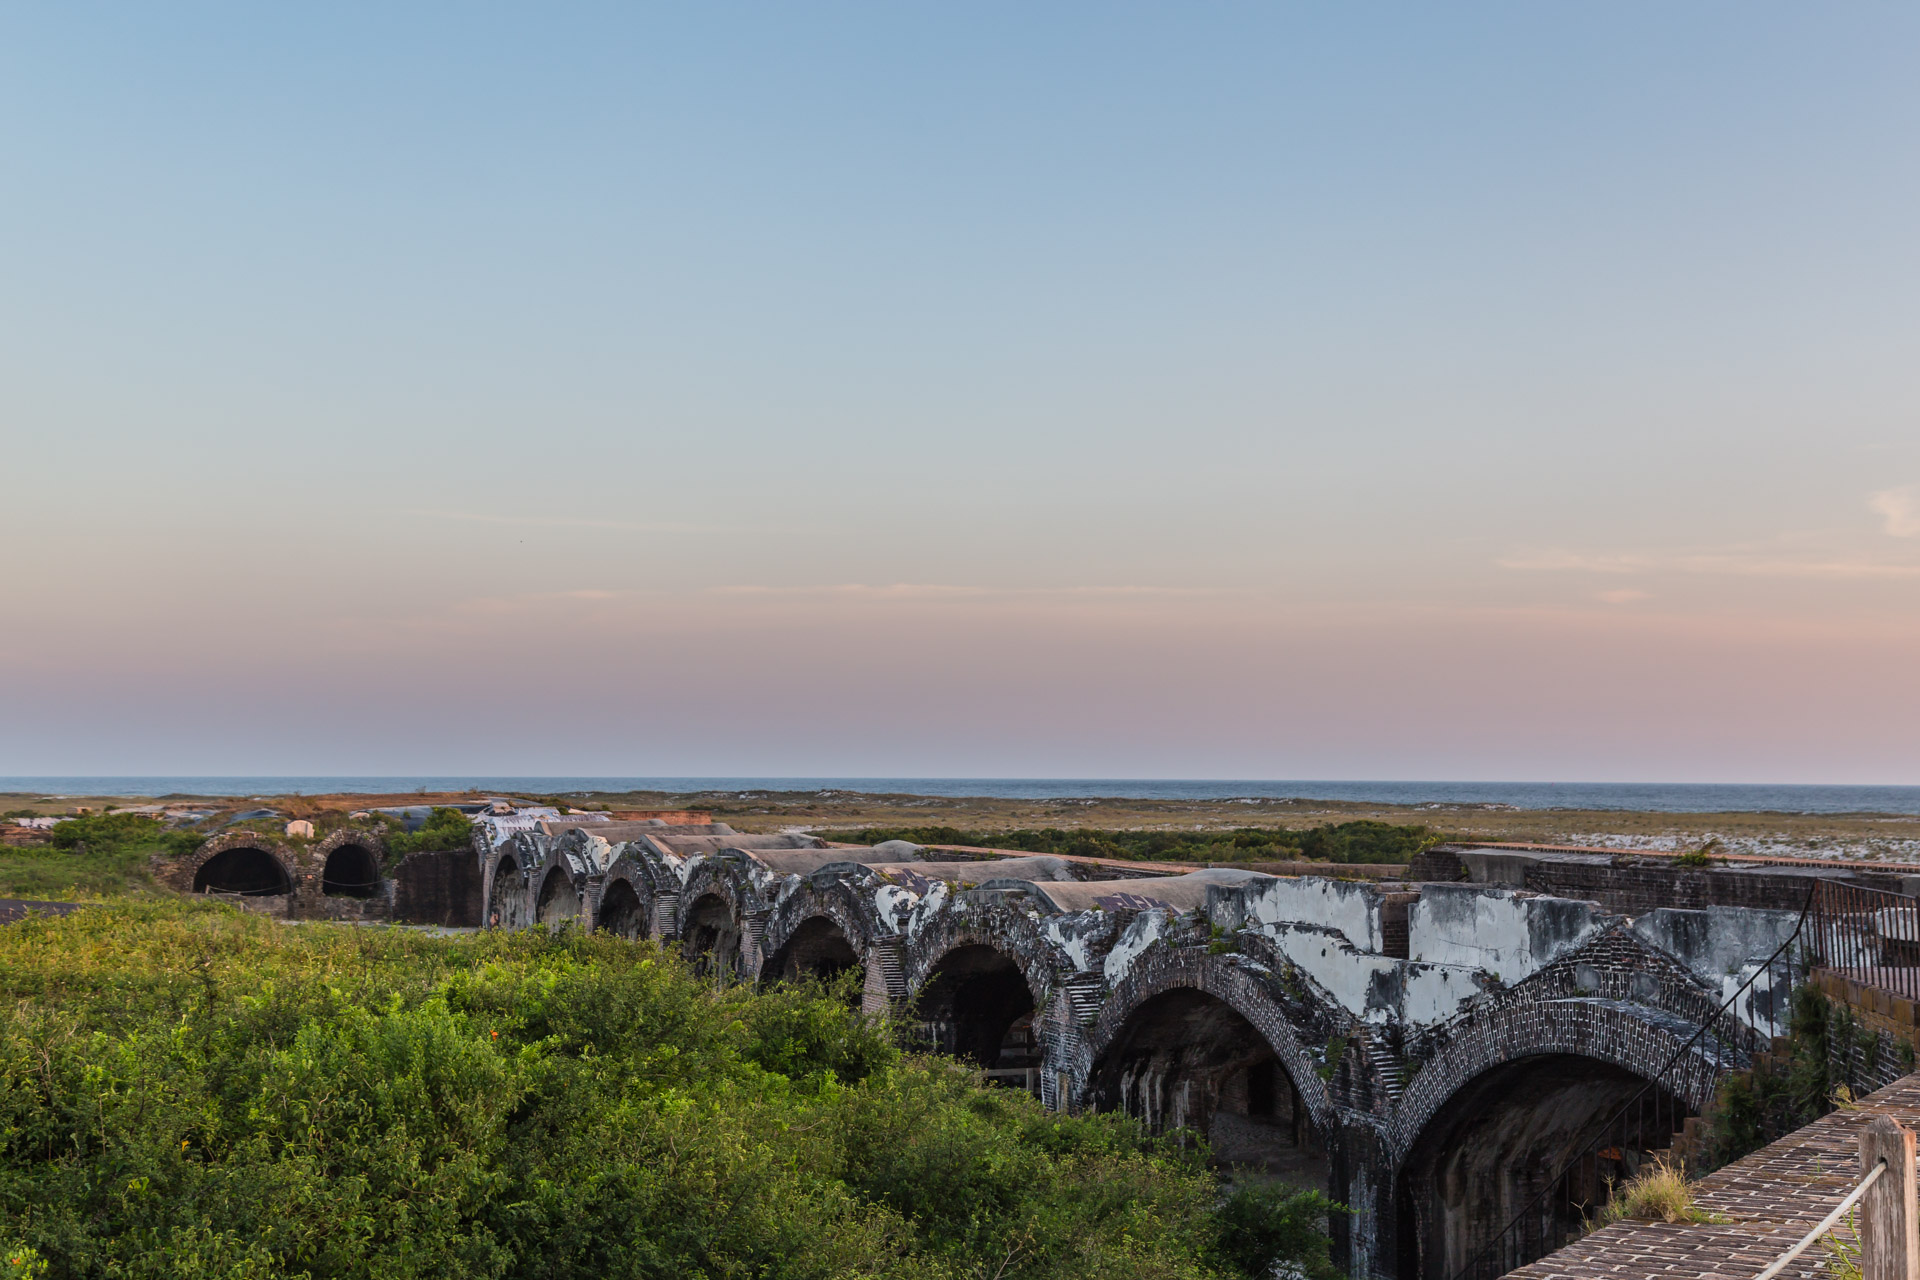 Fort Pickens (top)